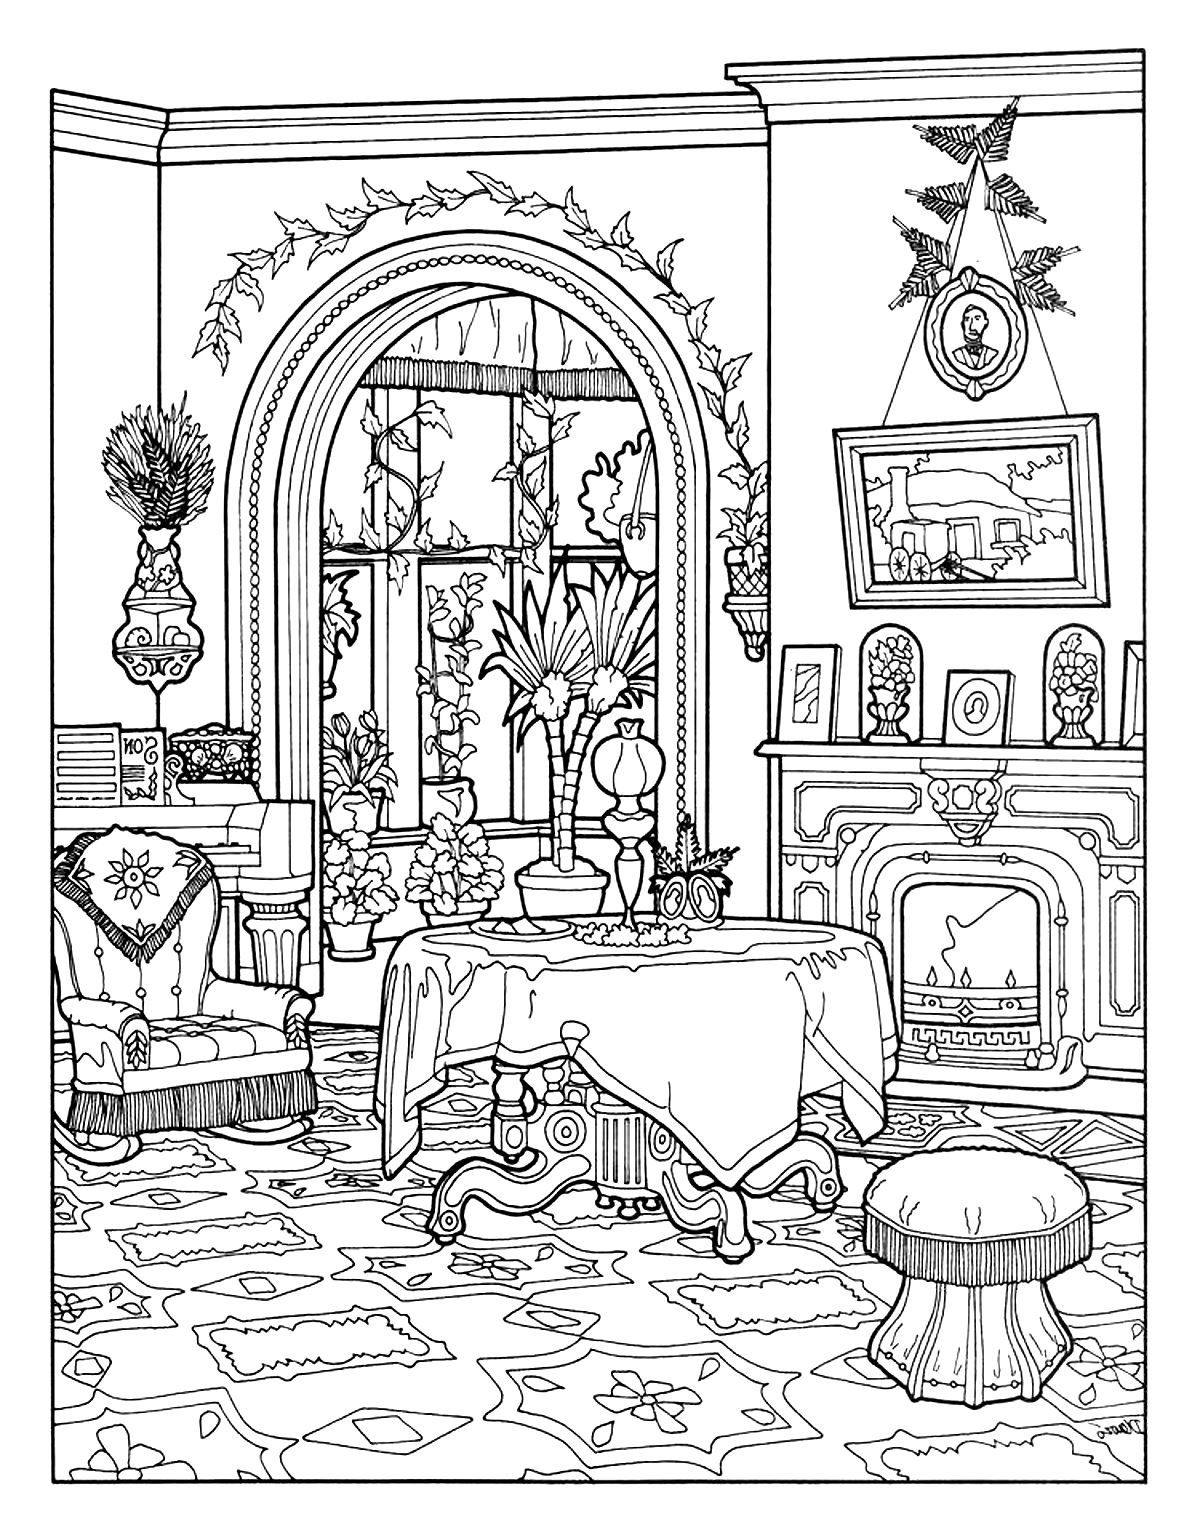 victorian colouring sheets victorian printable coloring pictures colouring sheets victorian